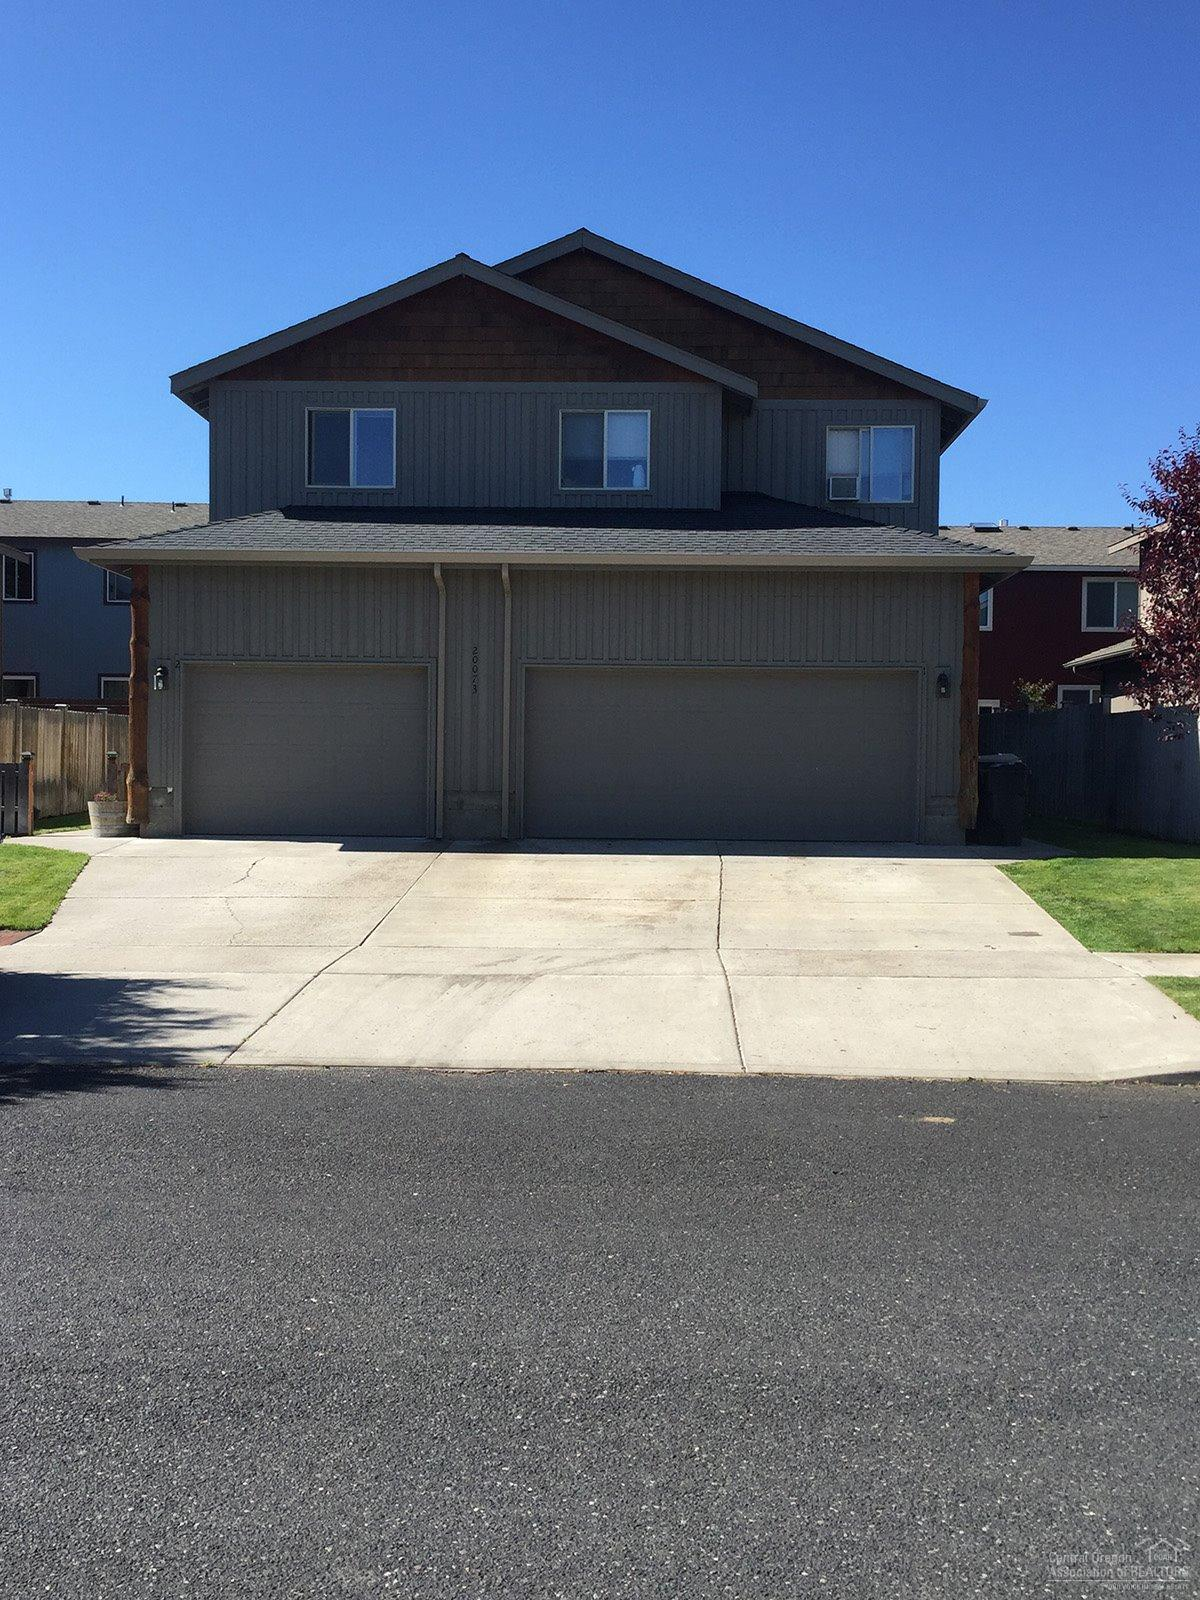 20073 Porter Place, Bend, OR 97702 (MLS #201606621) :: Birtola Garmyn High Desert Realty